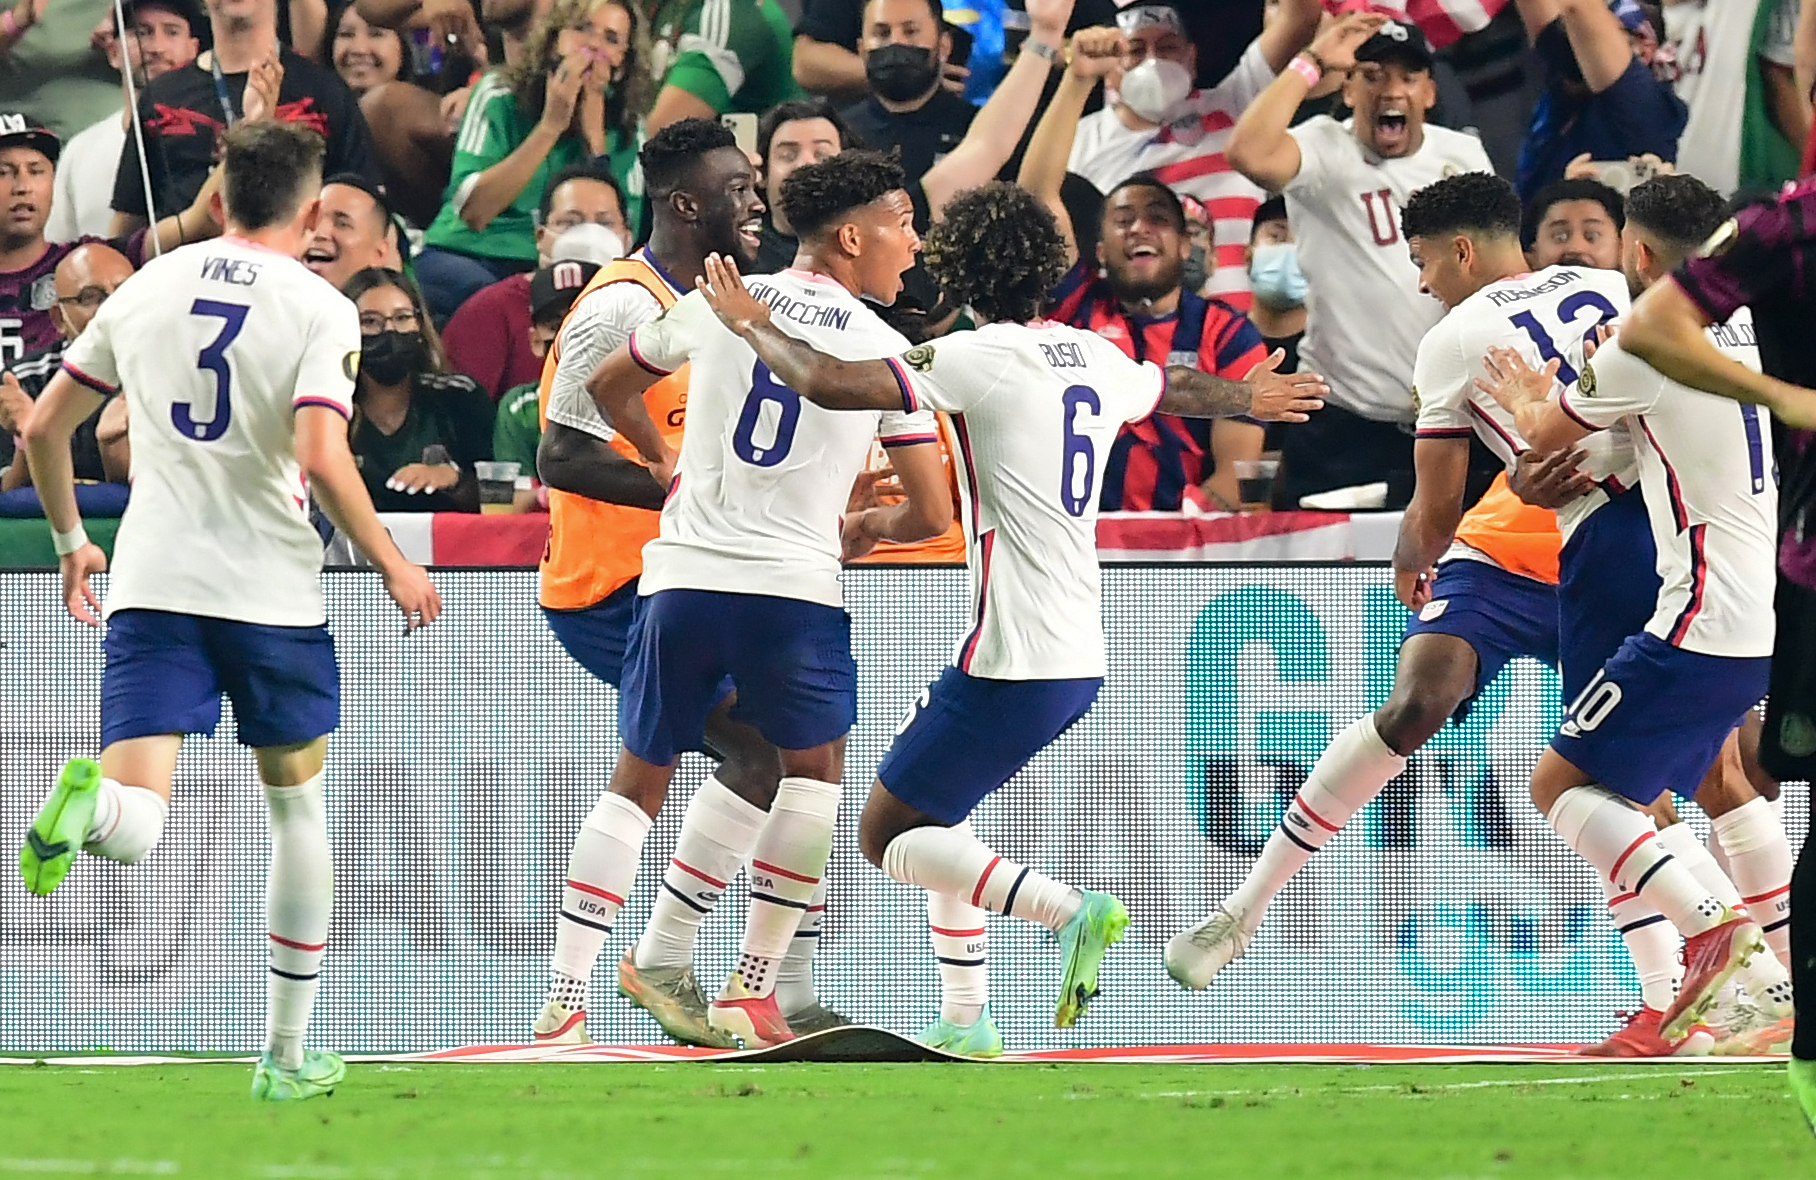 USA team celebrates after USA's defender Miles Robinson scored during the Concacaf Gold Cup football match final between Mexico and USA at the Allegiant stadium in Las Vegas, Nevada on August 1, 2021.